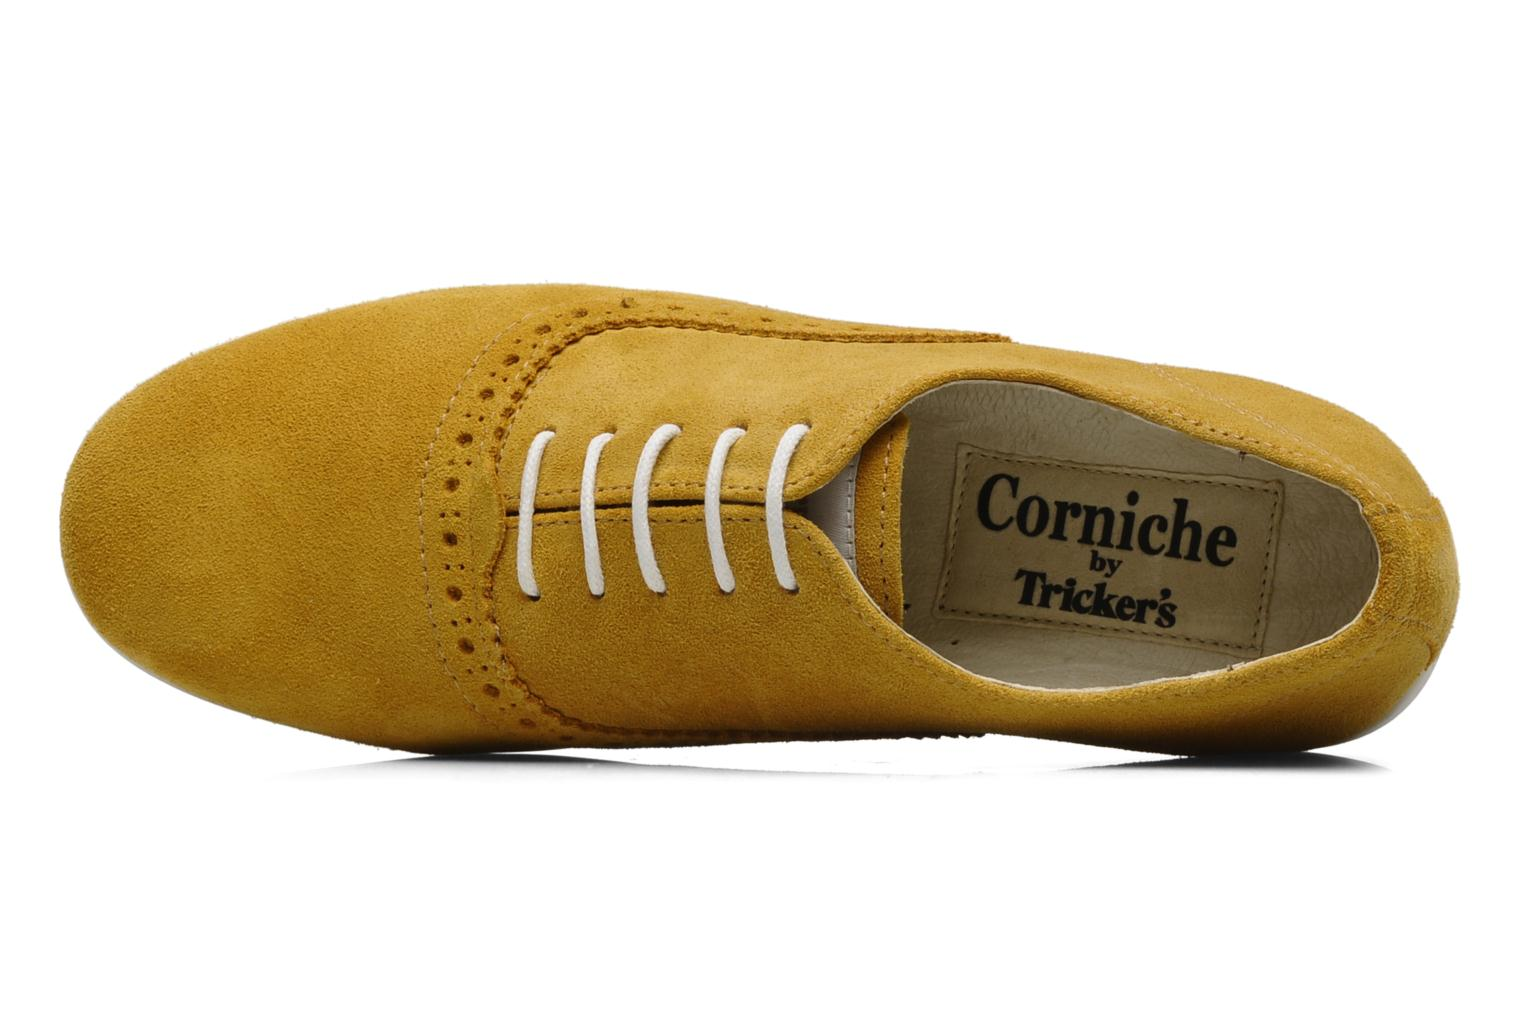 Larry CM1000 Yellow suede/white sole/White laces